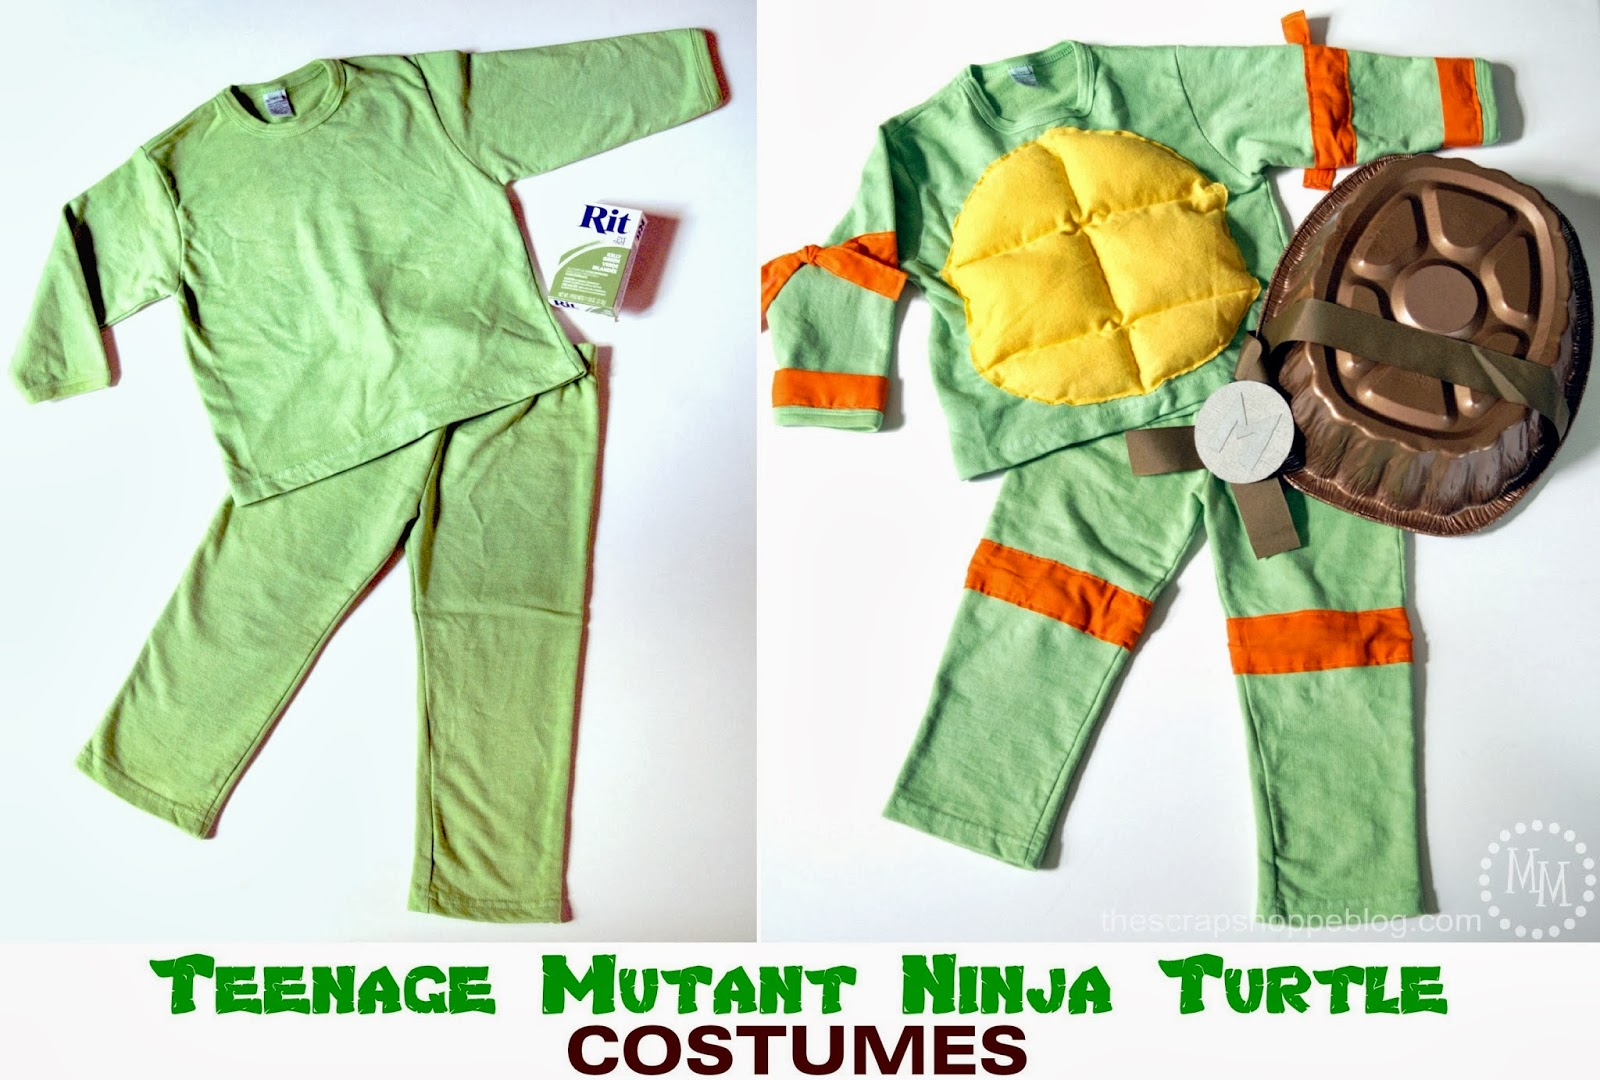 Teenage mutant ninja turtle costumes tmnt the scrap shoppe teenage mutant ninja turtle costumes tmnt solutioingenieria Image collections